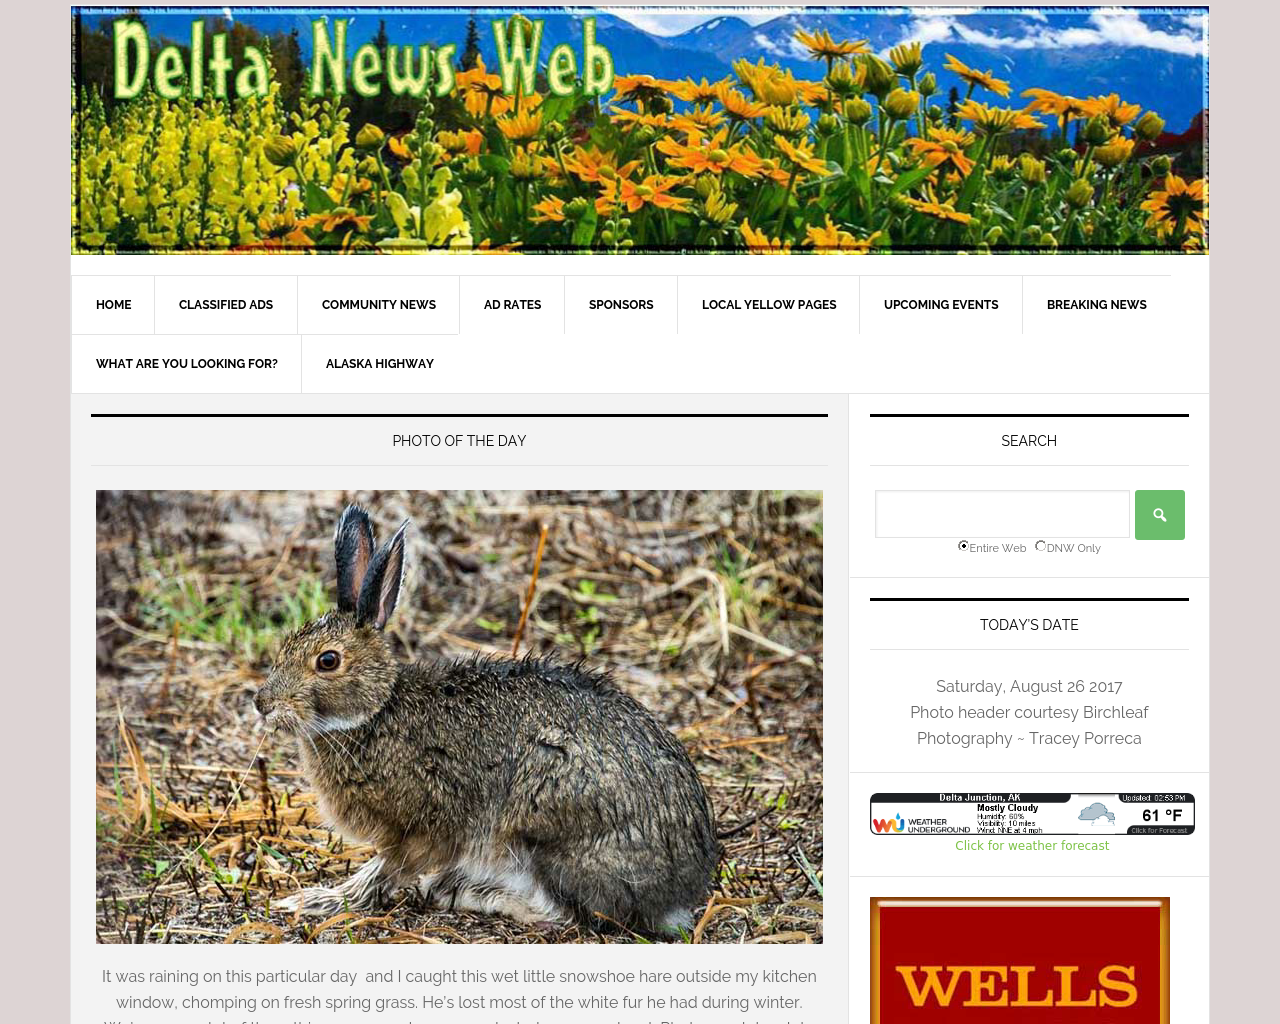 Delta-News-Web-Advertising-Reviews-Pricing